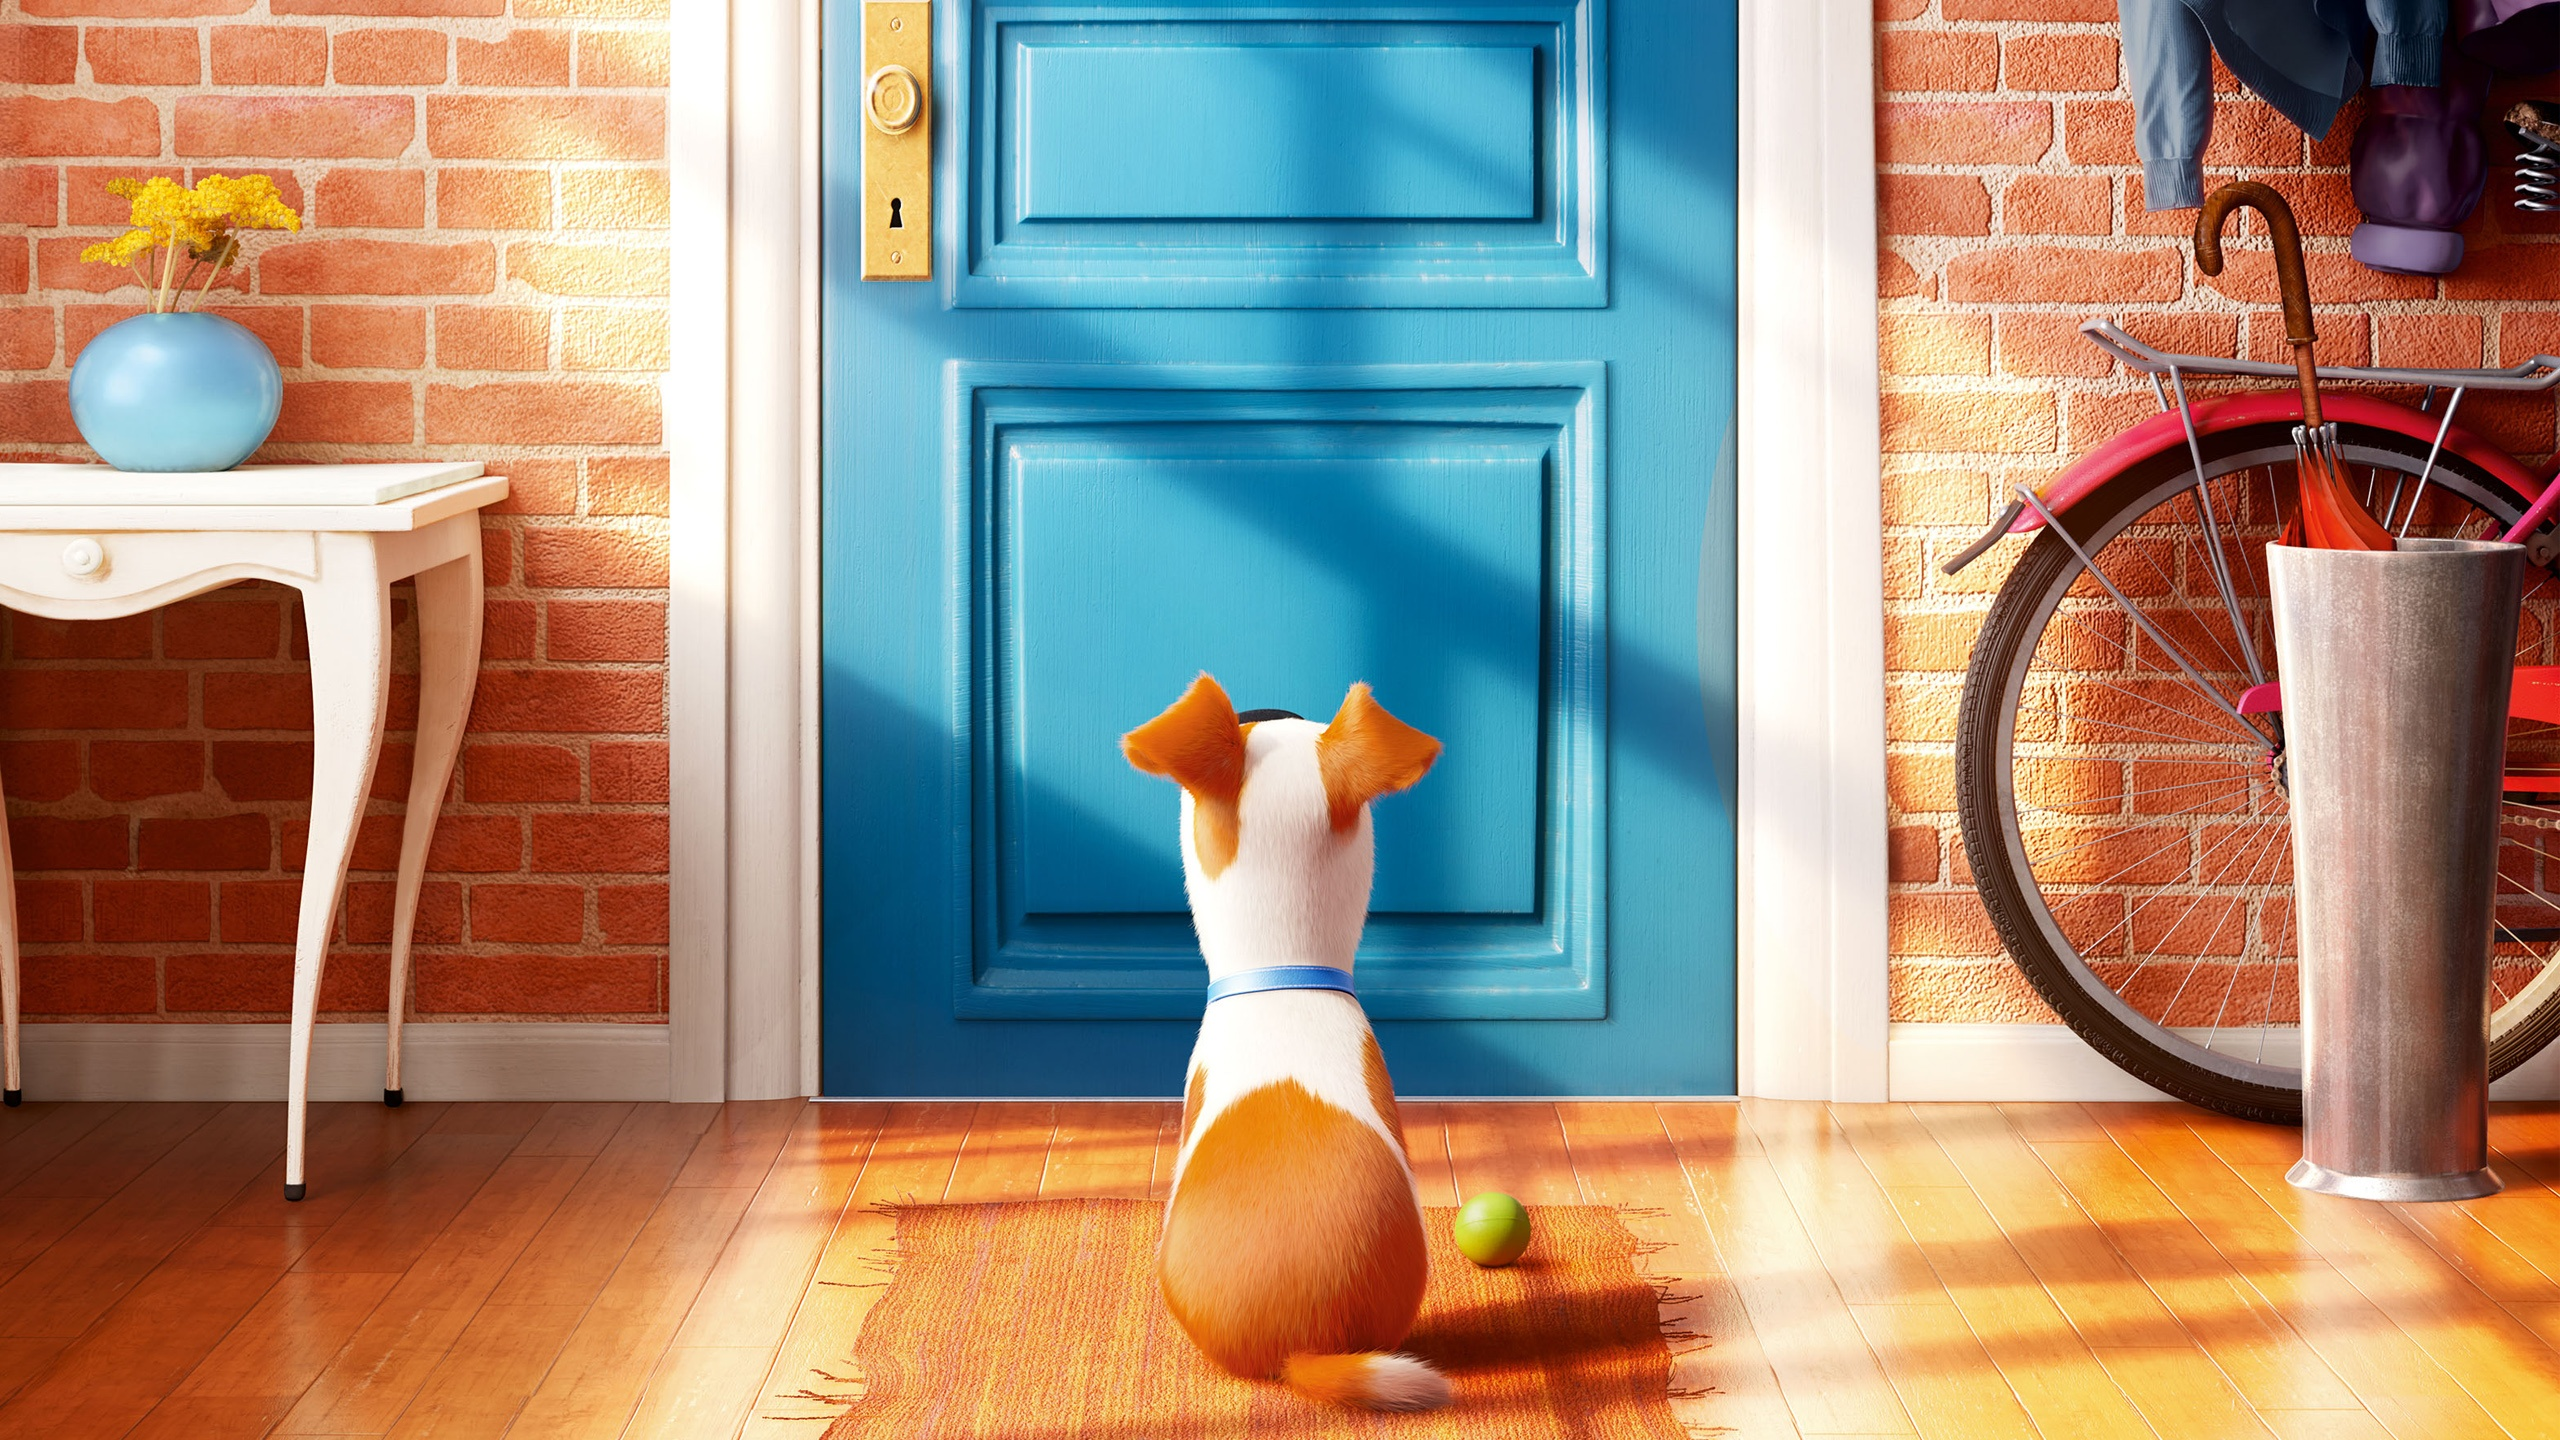 The Secret Life of Pets Movie Wallpapers HD Wallpapers 2560x1440